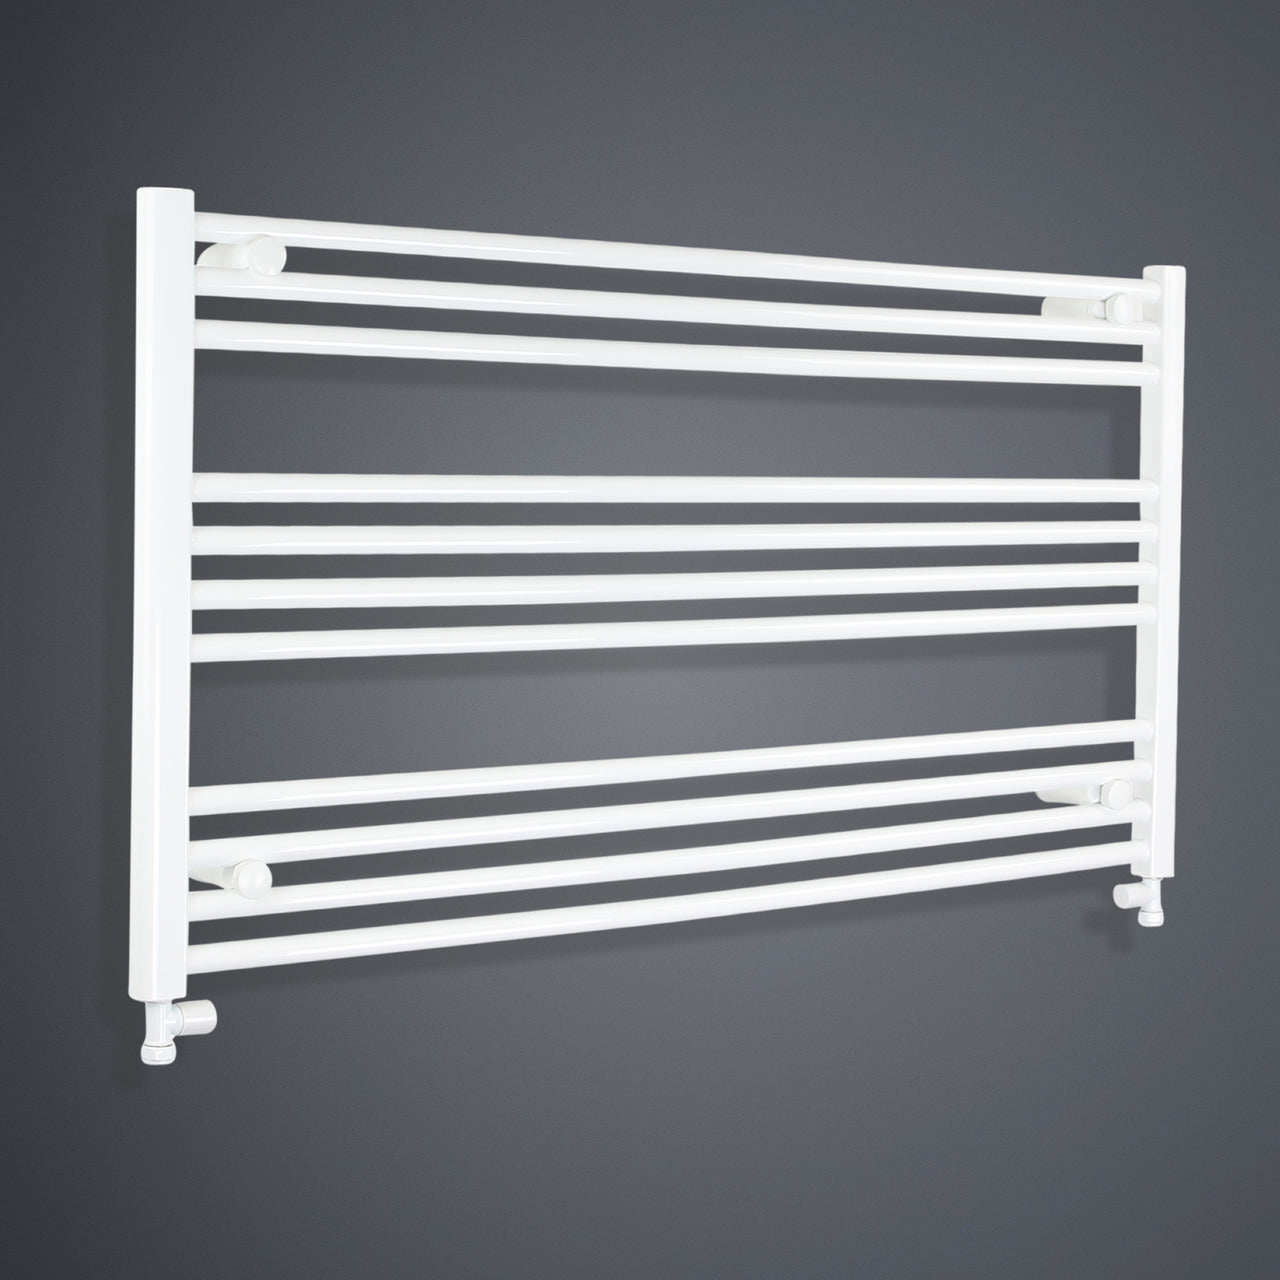 1300mm Wide 600mm High Flat White Heated Towel Rail Radiator HTR,With Straight Valve